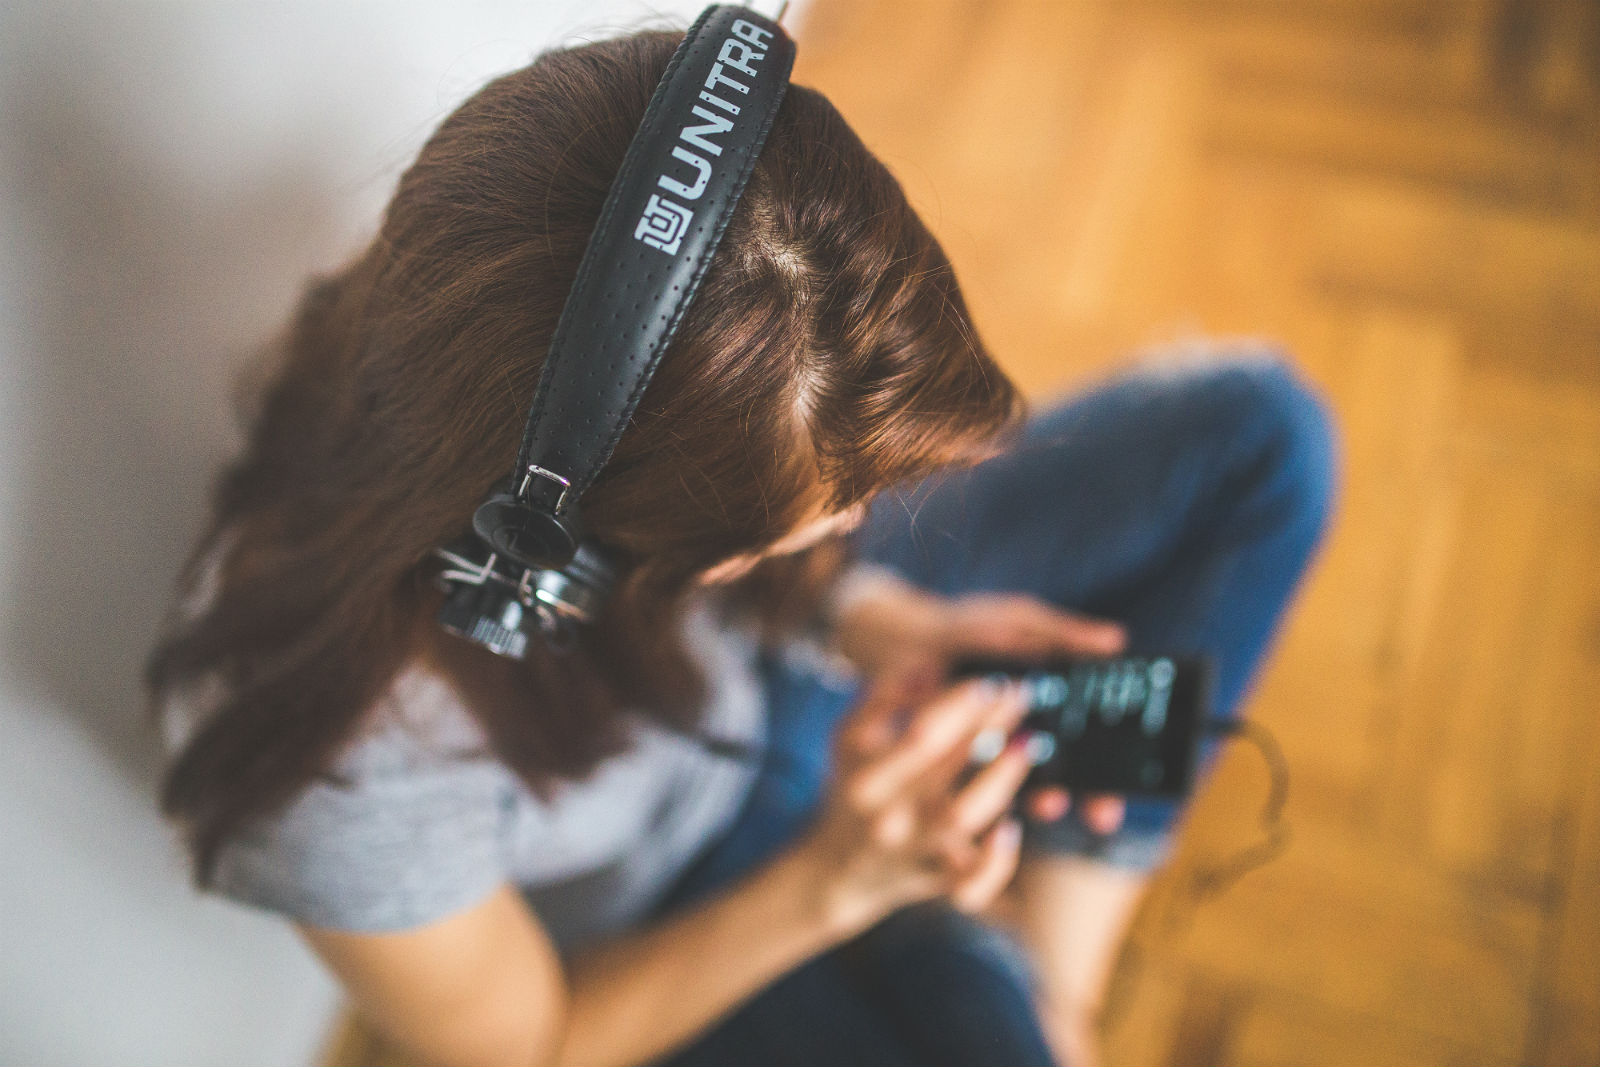 Following a Year of Podcast Growth, What to Look Out for in 2017